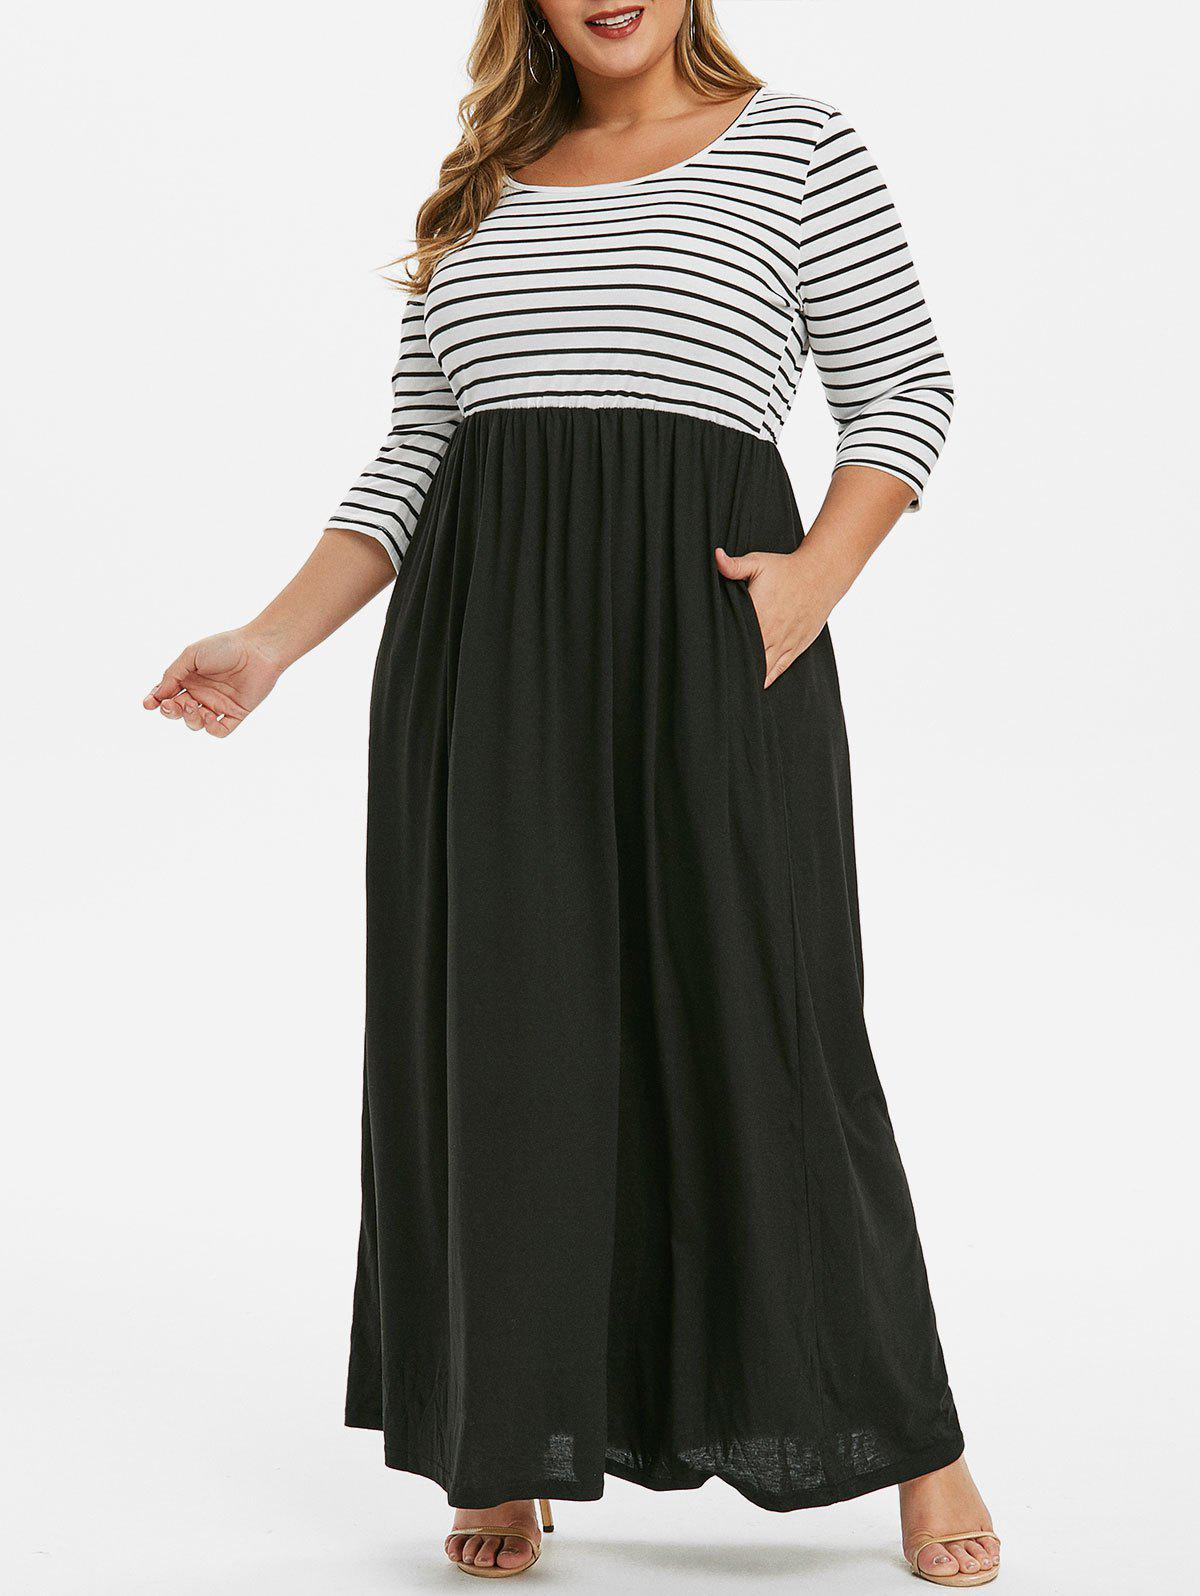 Seam Poches Stripes Panel Plus Size Maxi Dress Noir 4X